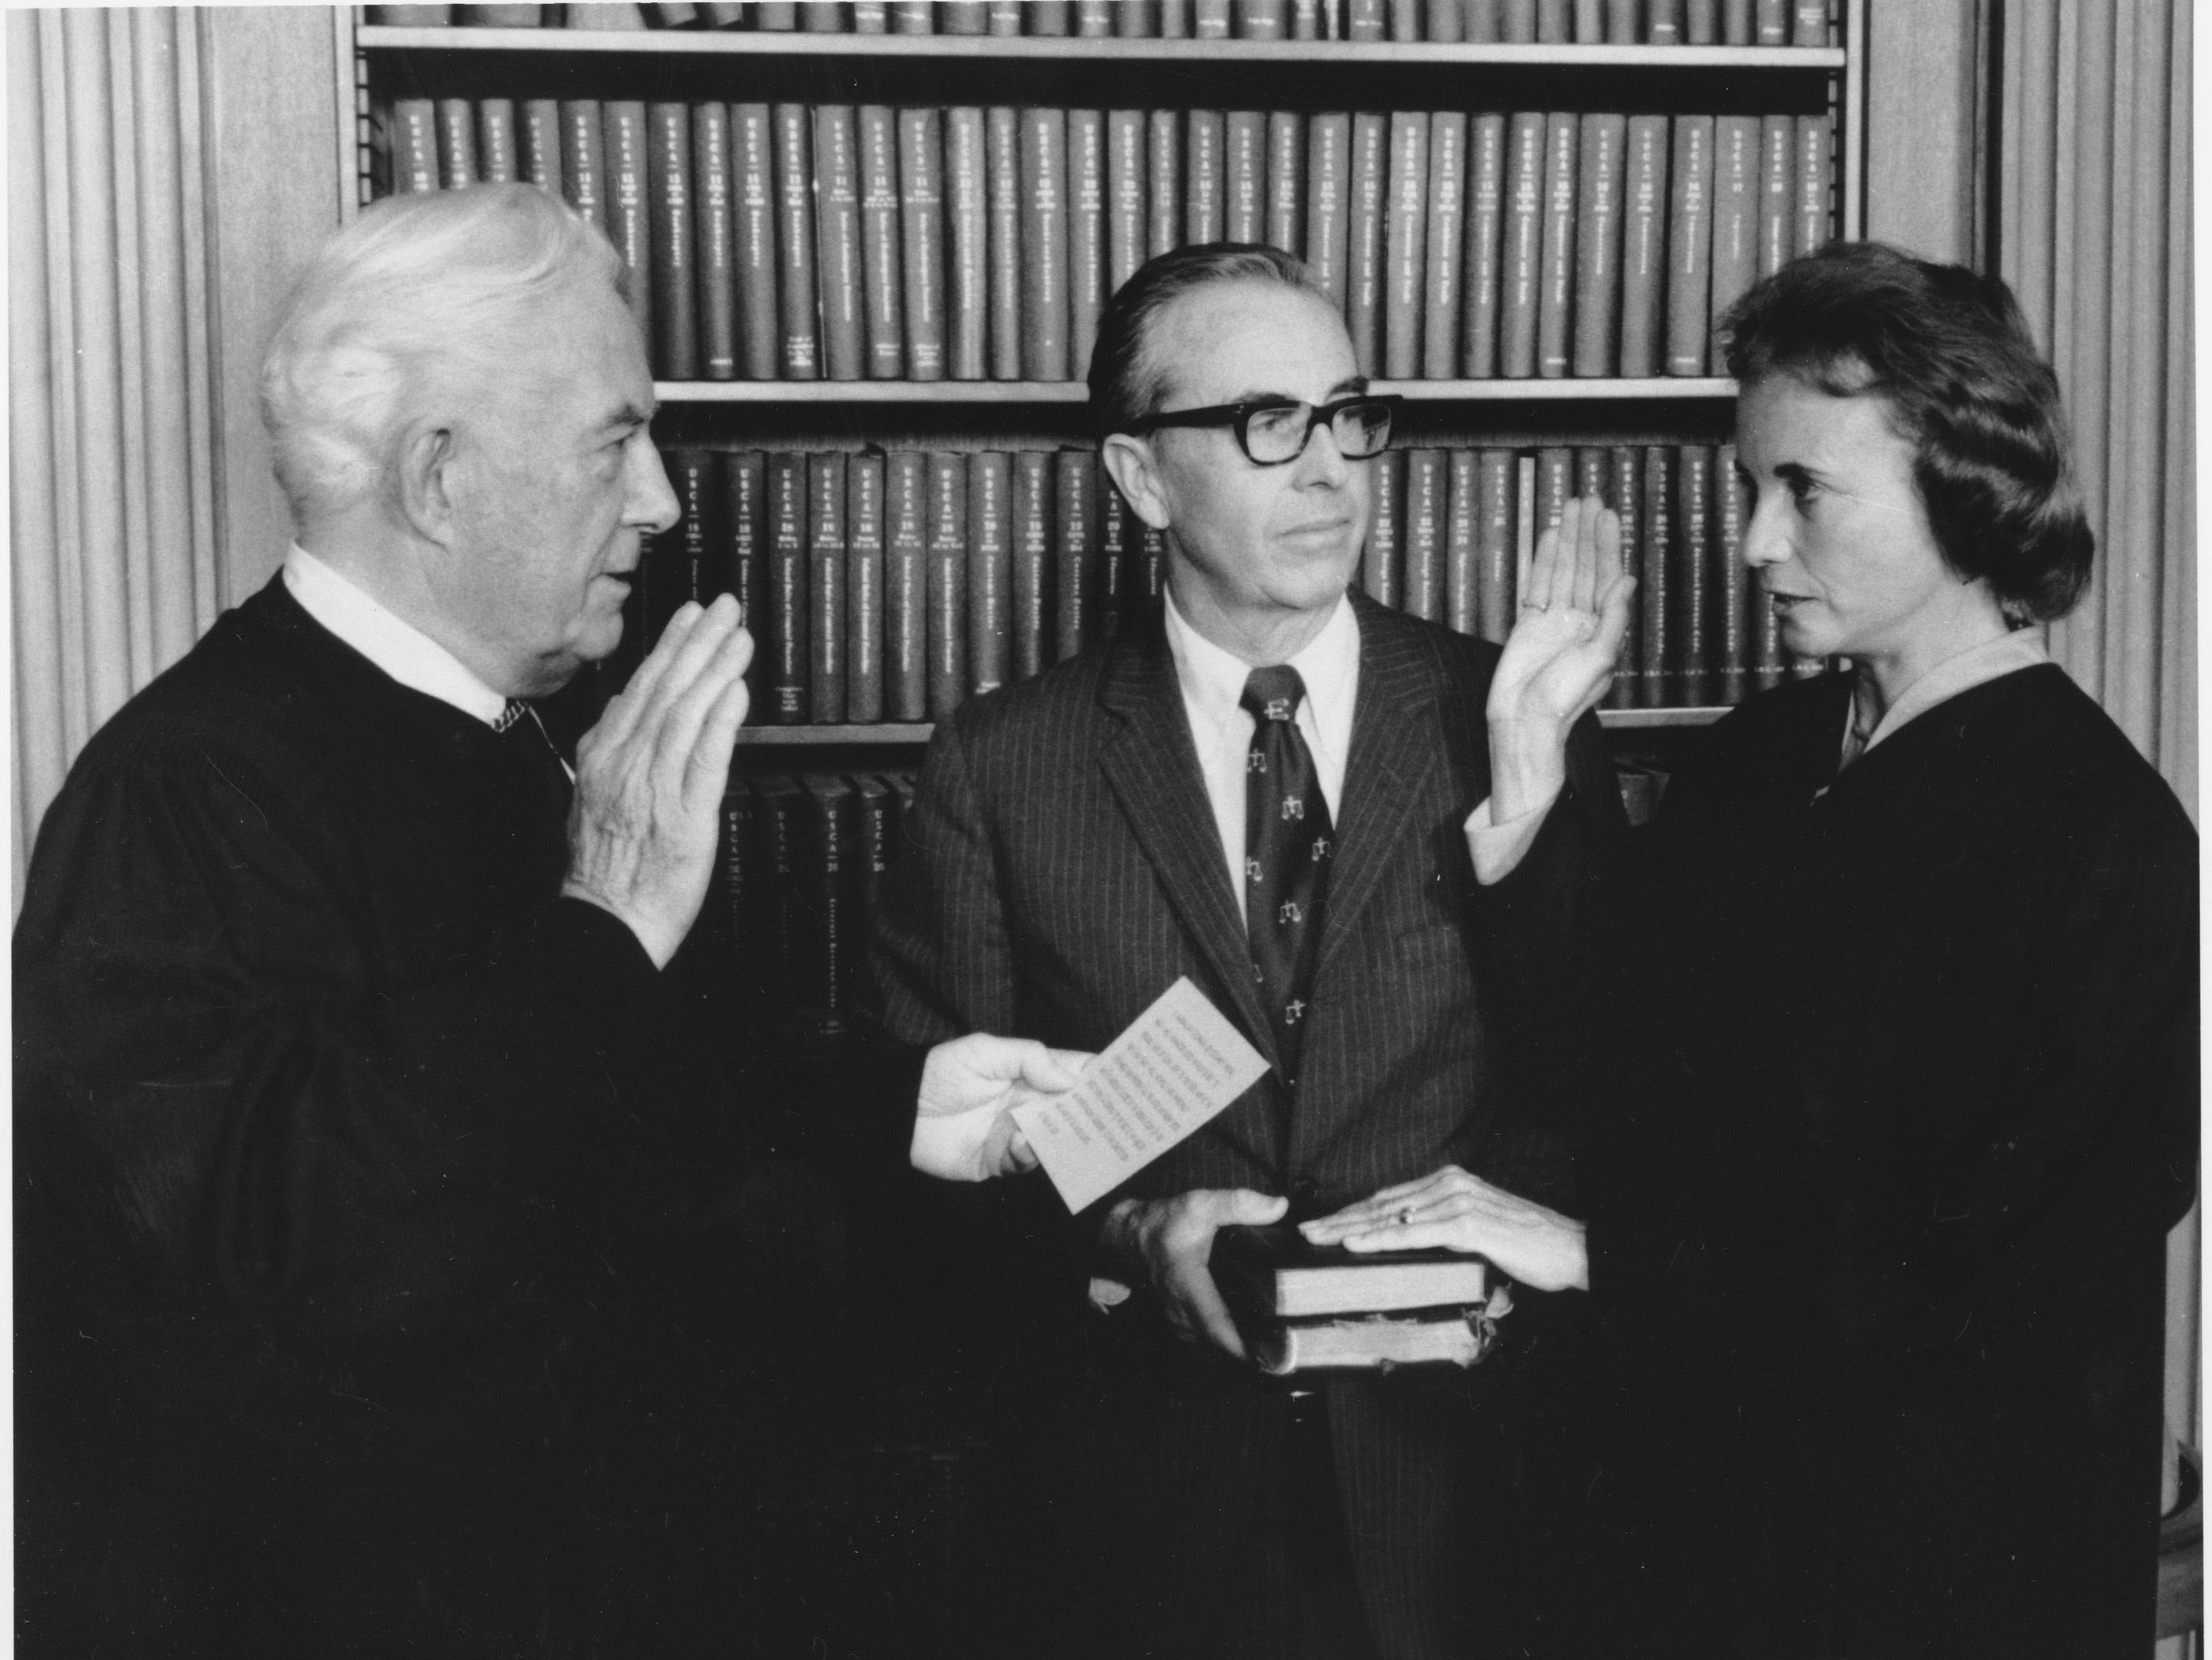 Sandra Day O'Connor is sworn in as an Associate Justice by Chief Justice Warren Burger at the Supreme Court in Washington, D.C. on Friday, Sept. 25, 1981.  Holding two family bibles, at center, is husband John J. O'Connor.